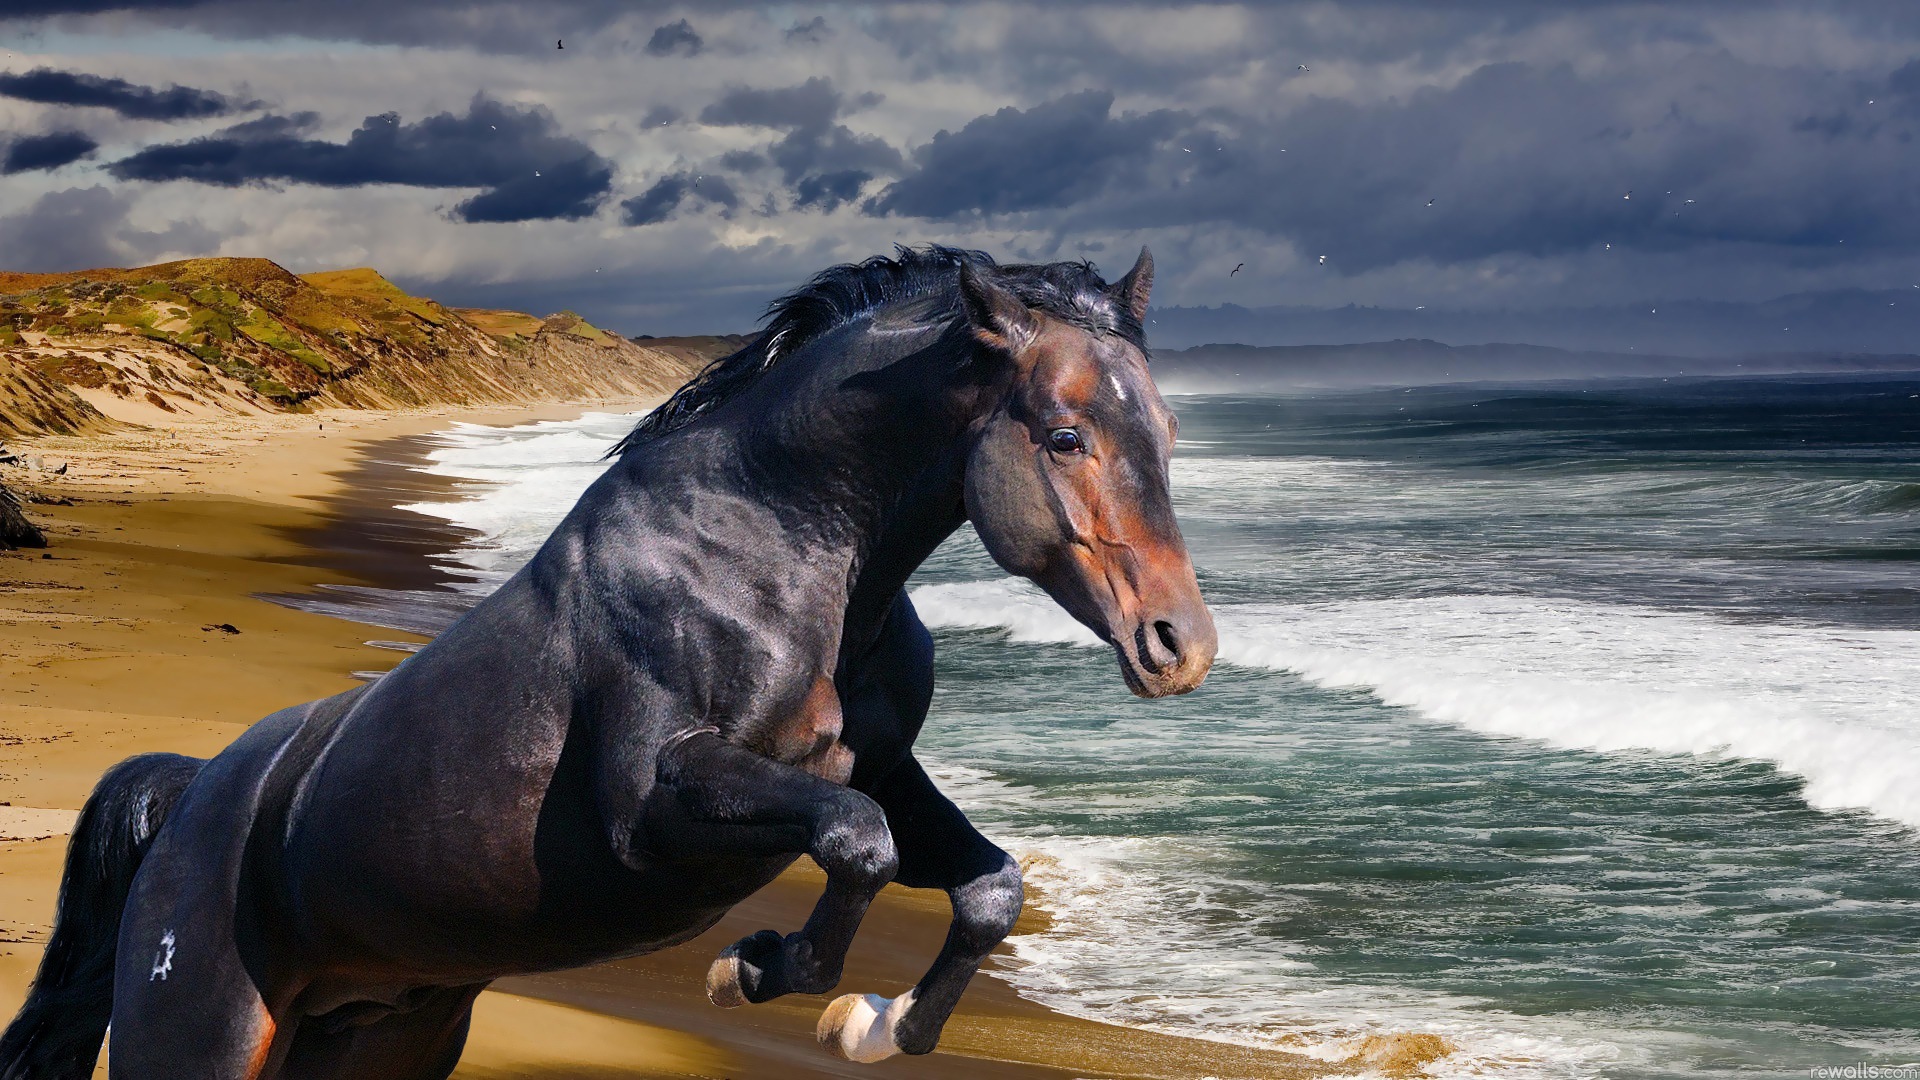 Animal - Horse  - Ocean - Beach - Sea - Waves Wallpaper